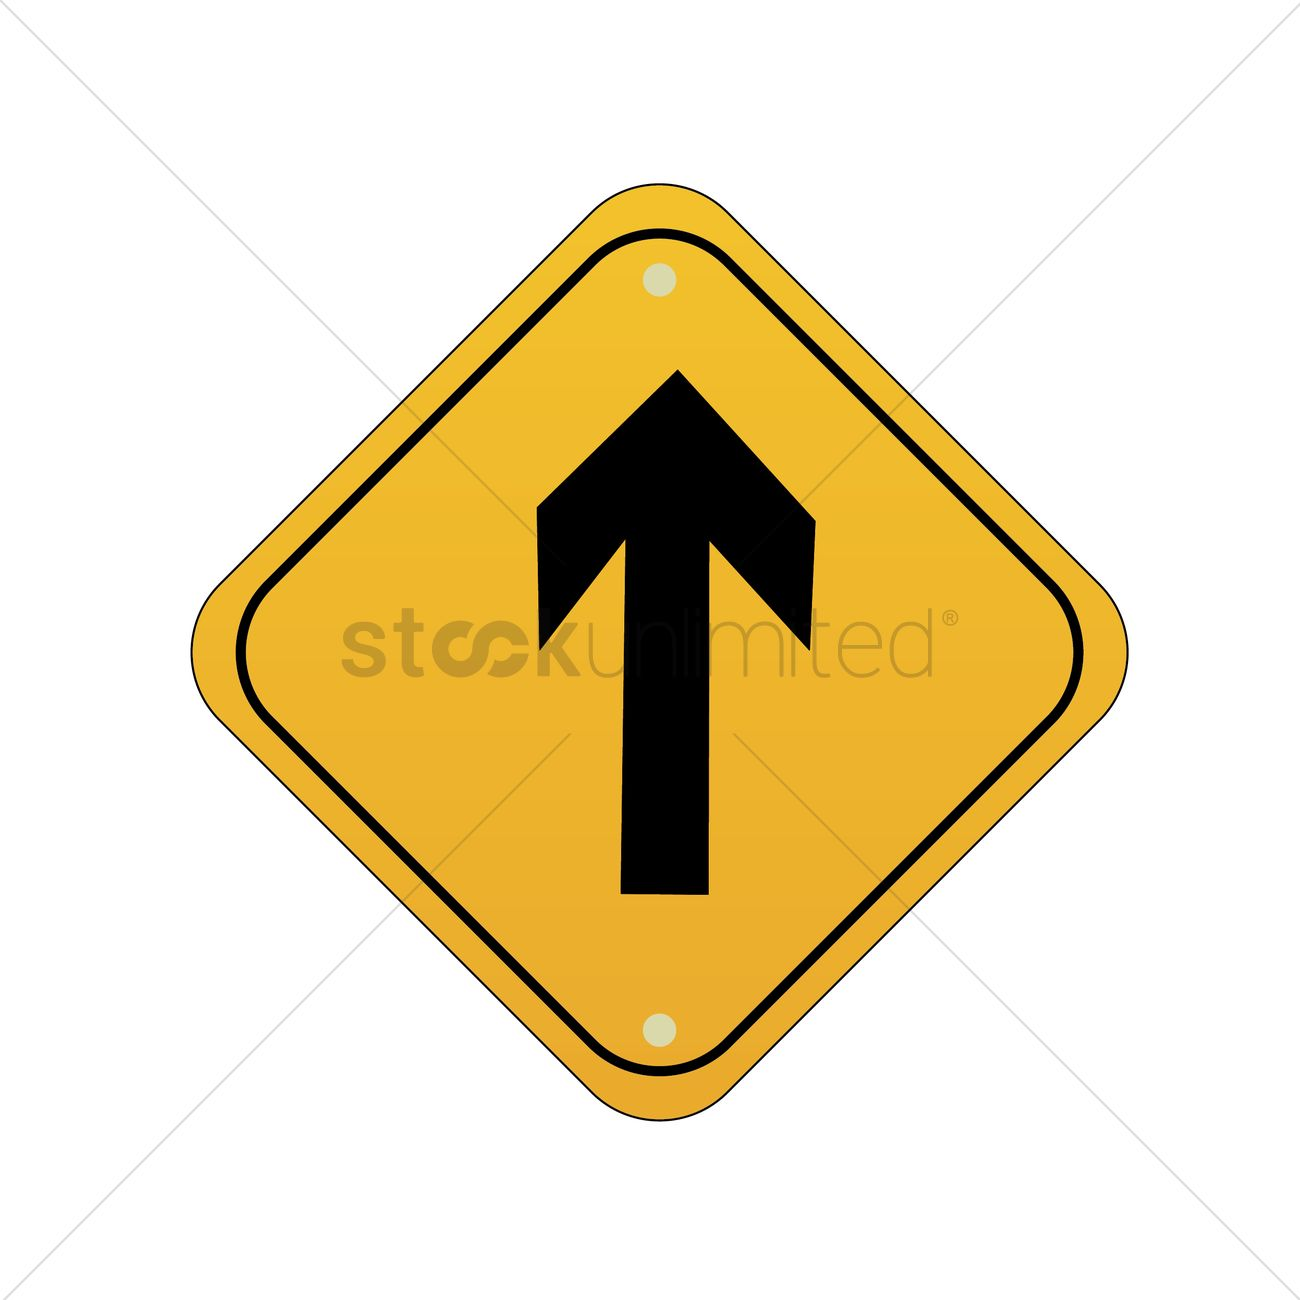 Go straight road sign vector image 1556158 stockunlimited go straight road sign vector graphic biocorpaavc